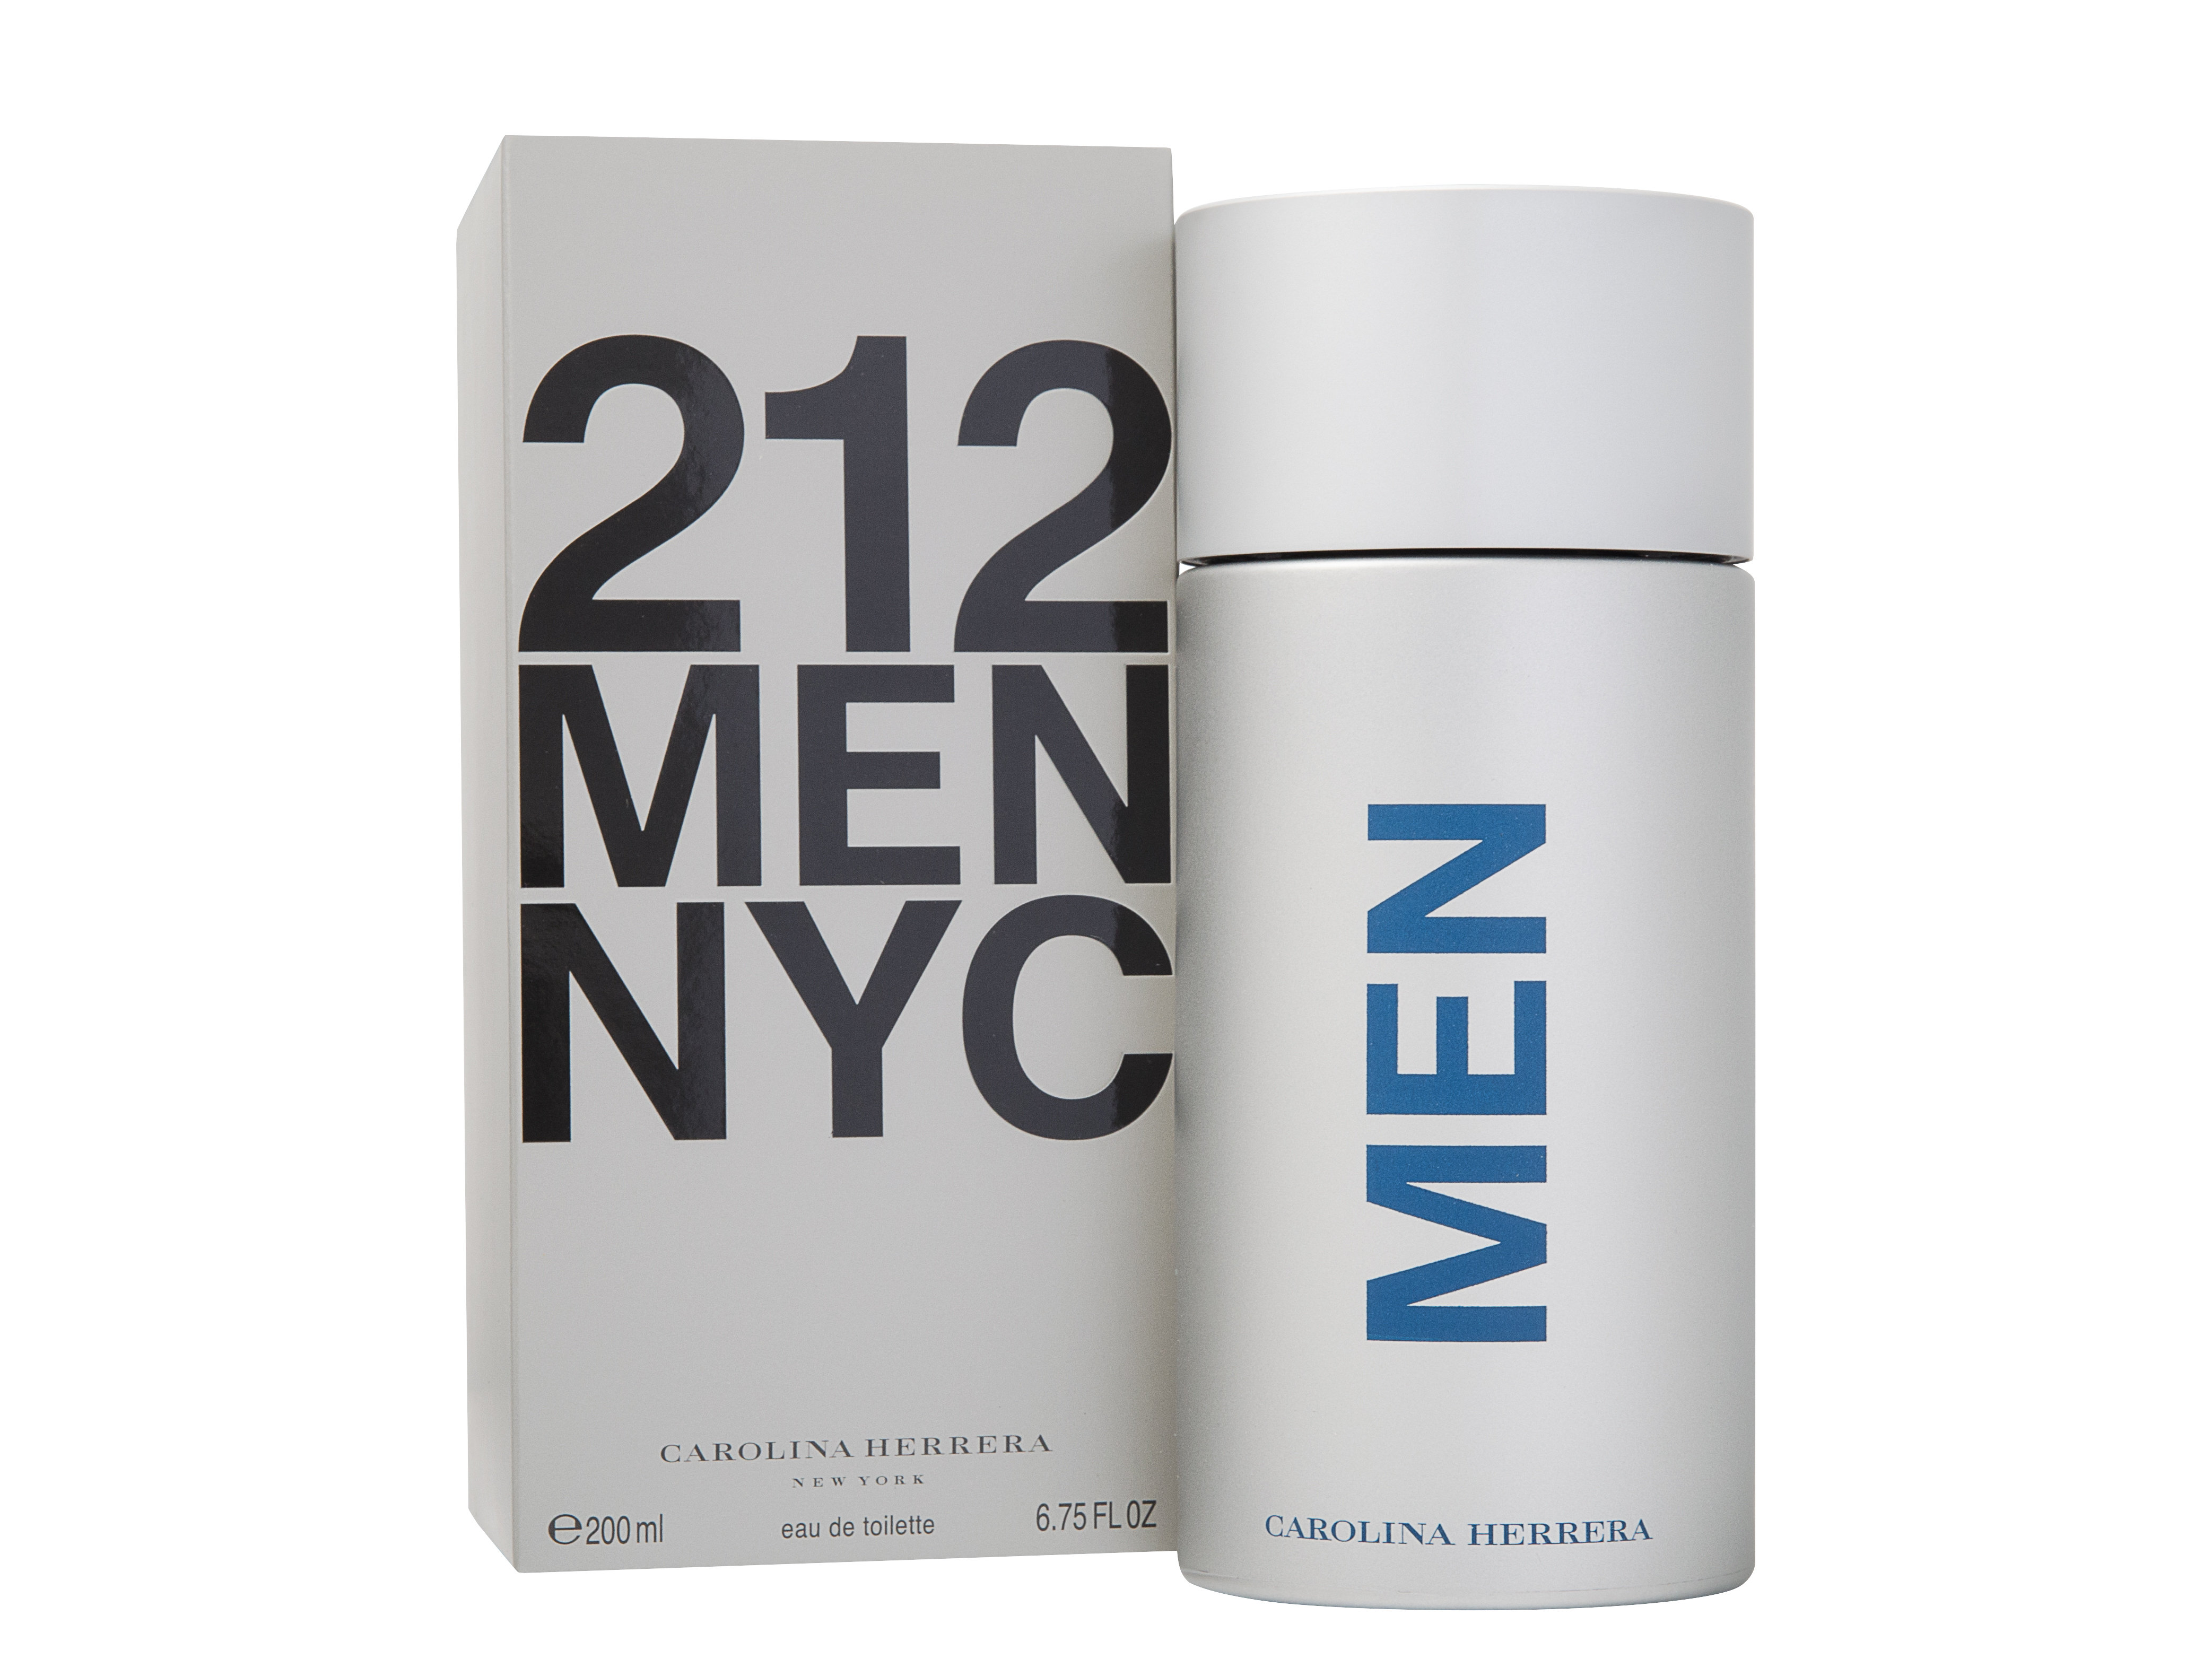 d5e924b642 Carolina Herrera 212 Men EDT 200ml. 212 NYC Men is designed for the  dynamic, attentive and, at the same time, masculine man who is intelligent  and has a ...